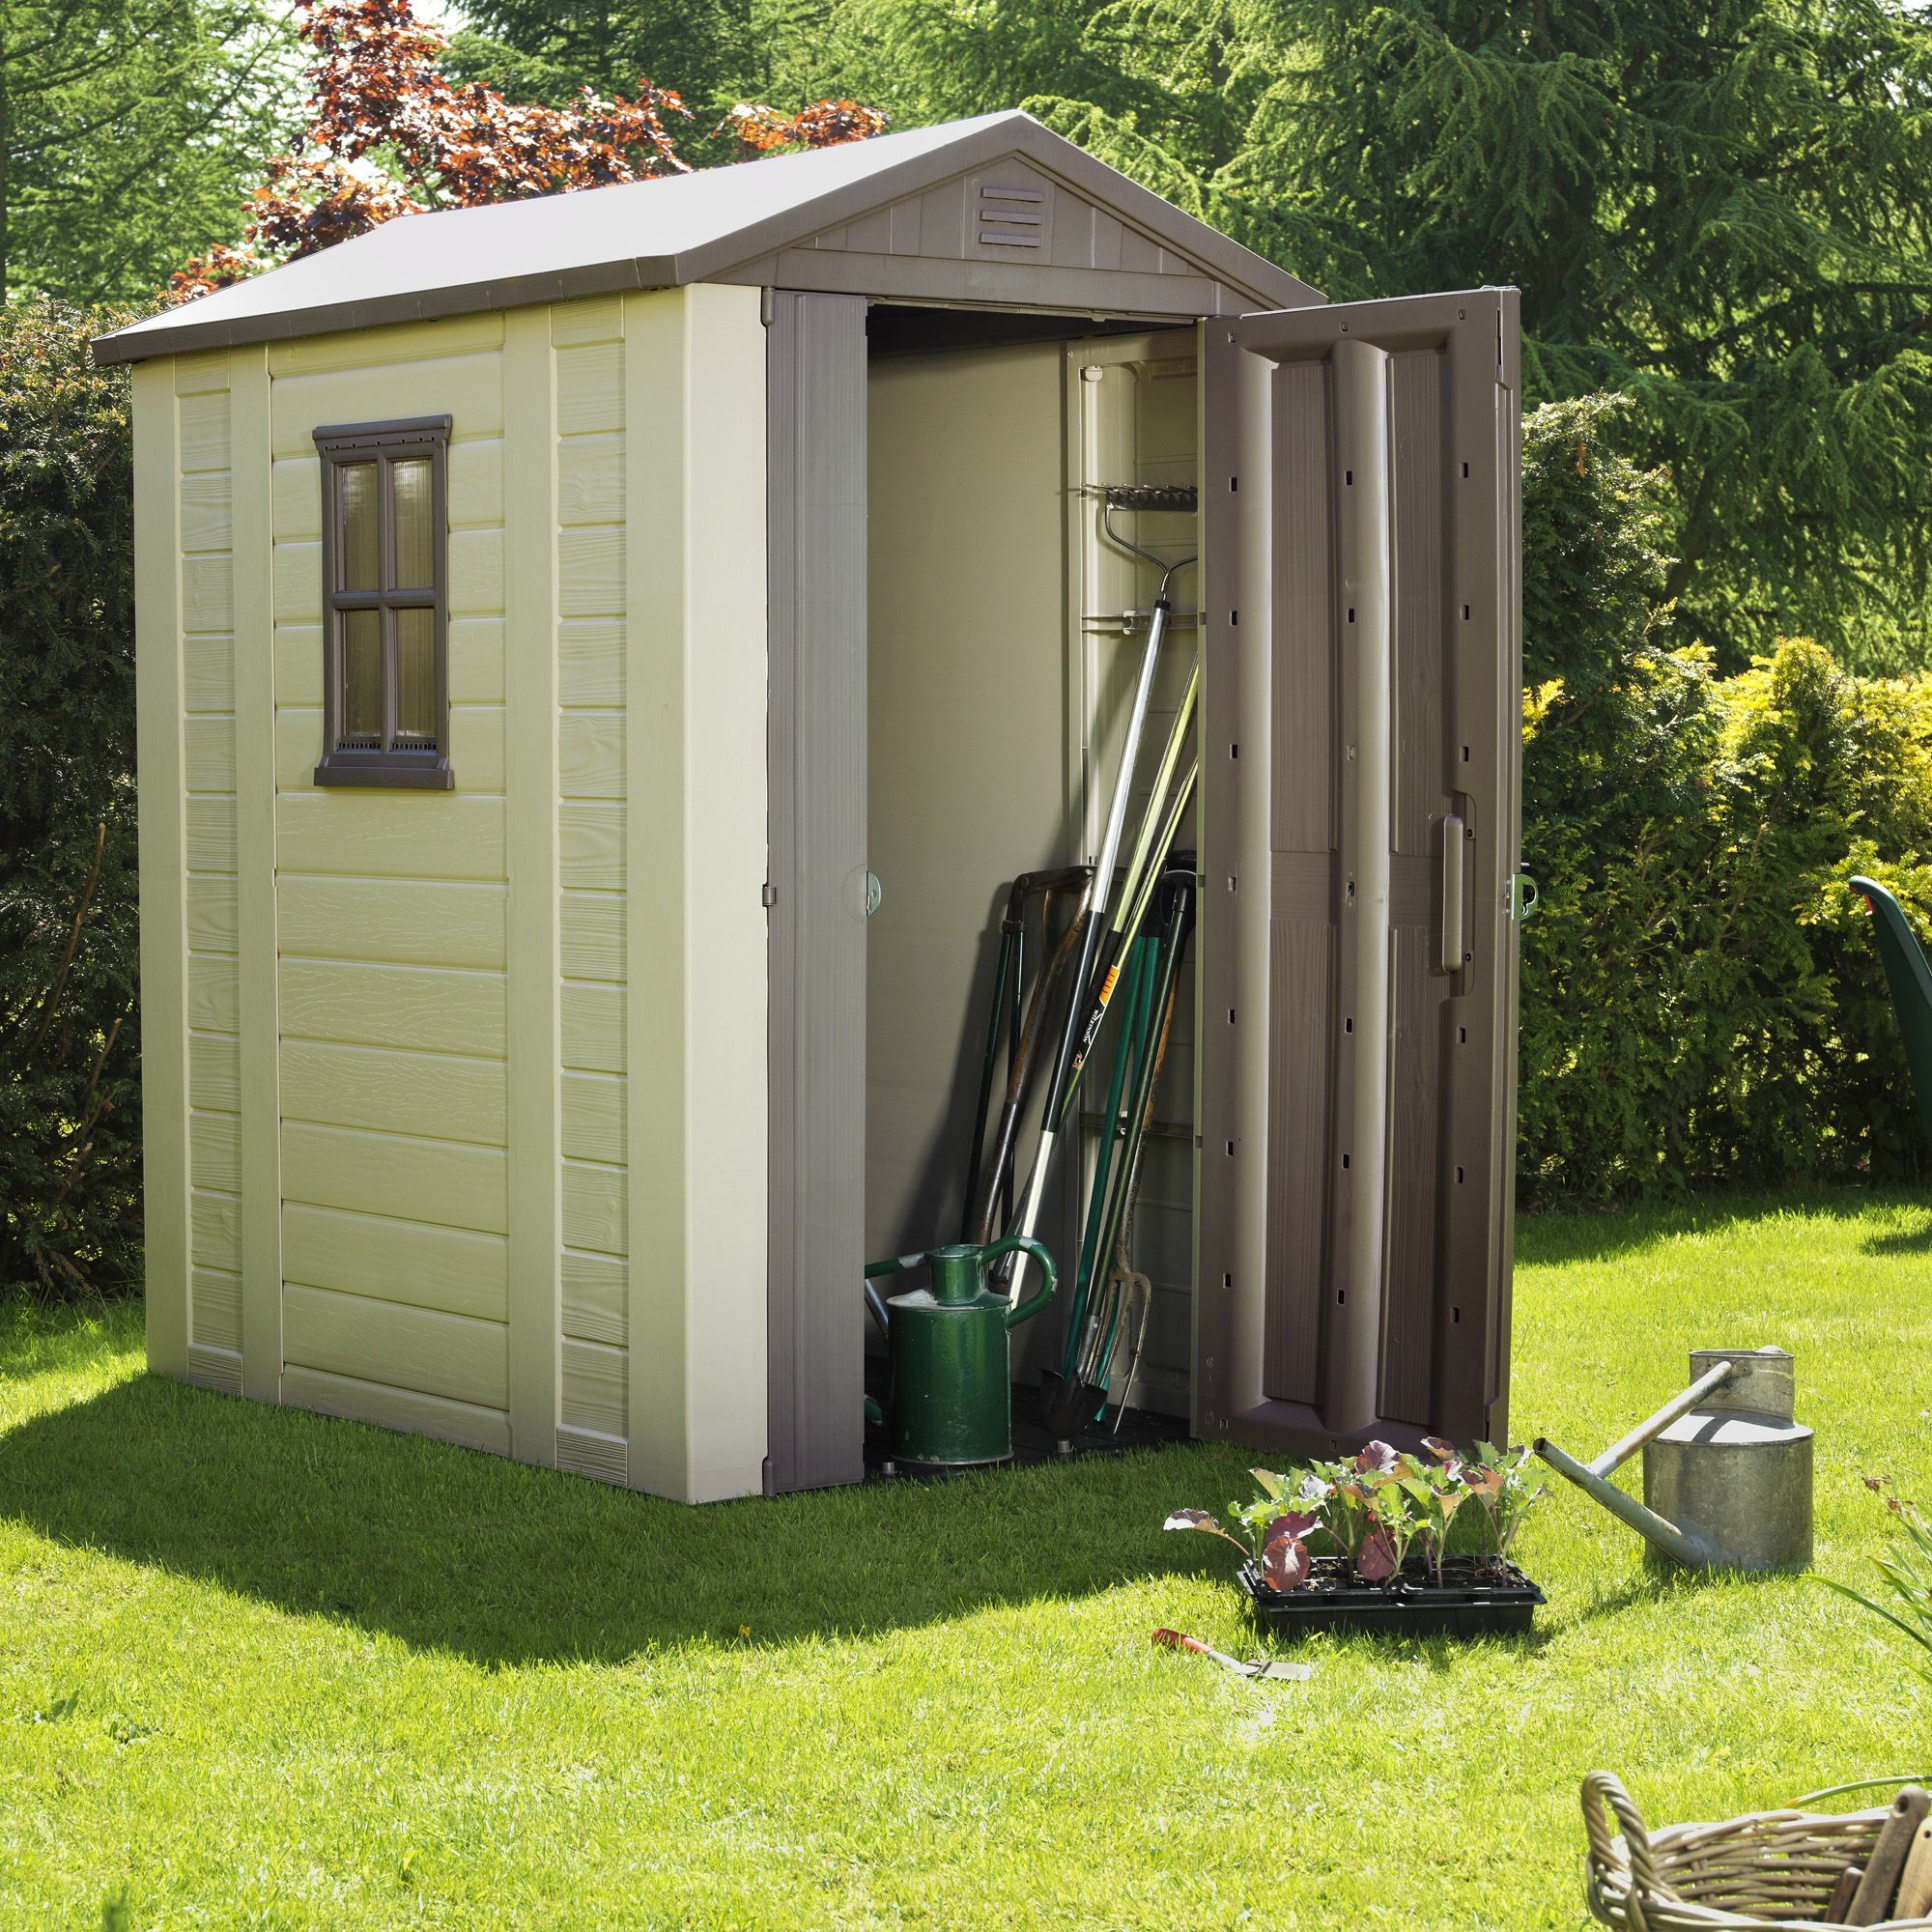 Argos storage sheds 28 images summer house uk sale simple wood projects plans metal vinyl - Garden sheds oregon ...